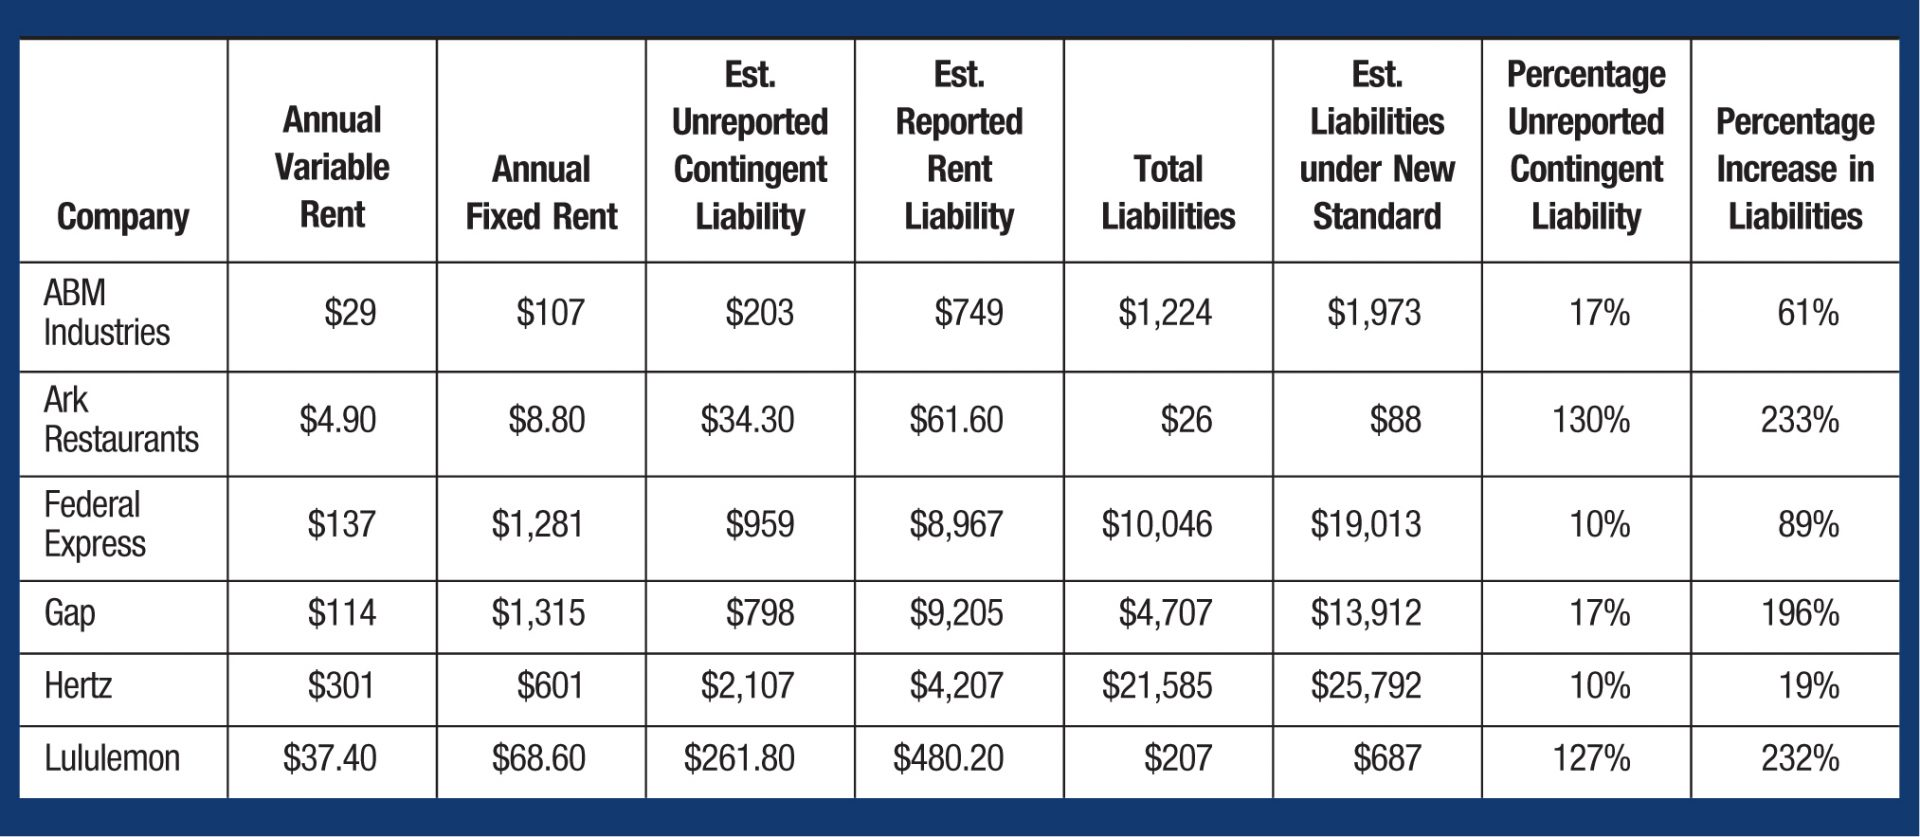 Variable lease payments implications under the new lease standard company annual variable rent annual fixed rent est unreported contingent liability falaconquin